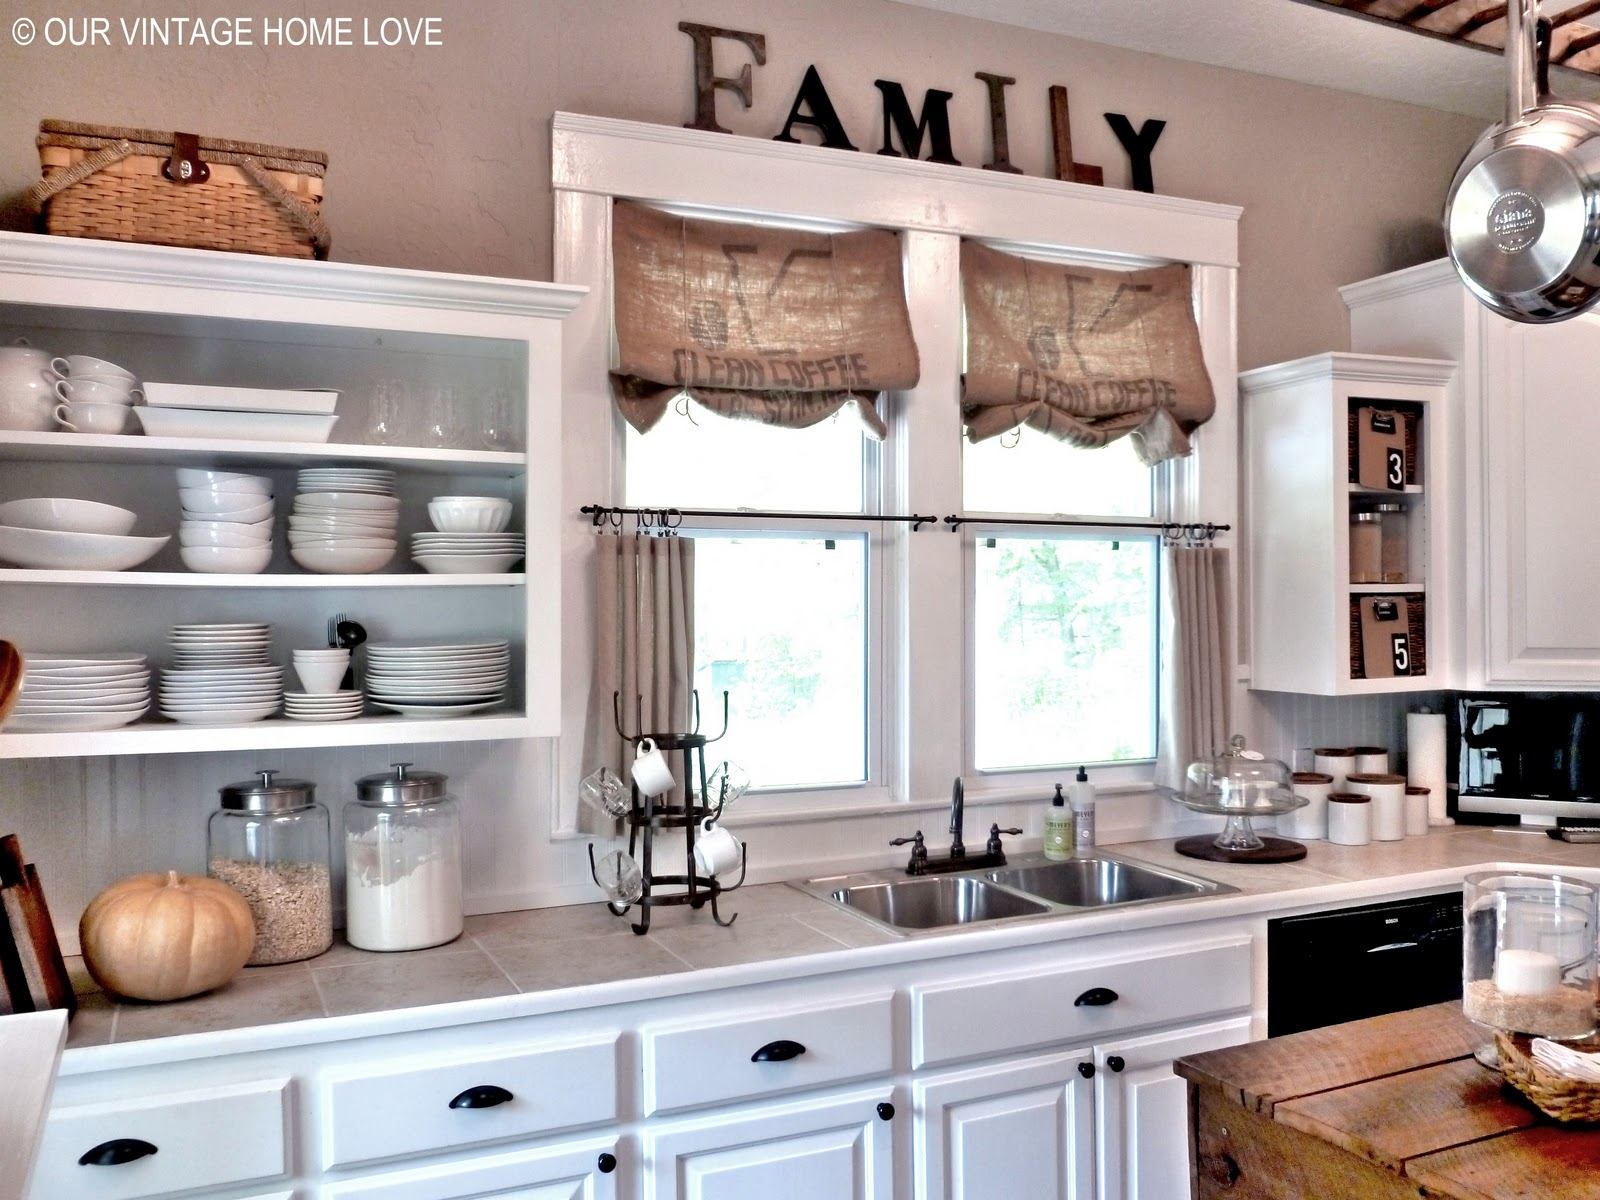 Vintage home love inexpensive window treatments and a Dressing a kitchen